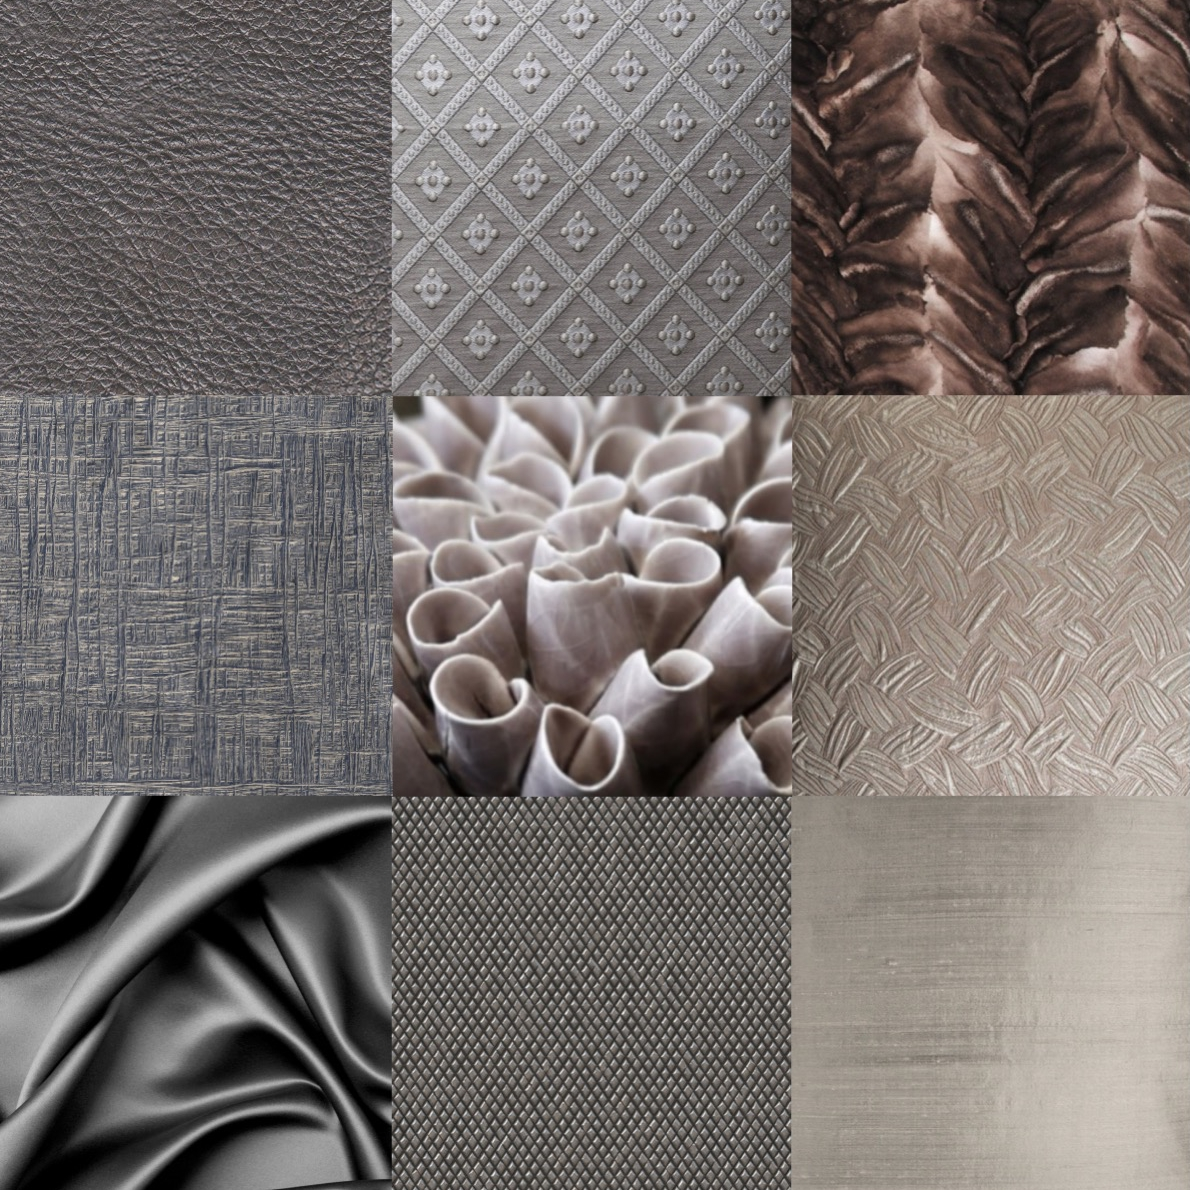 Understanding Texture In Interior Design The Interior Design Student